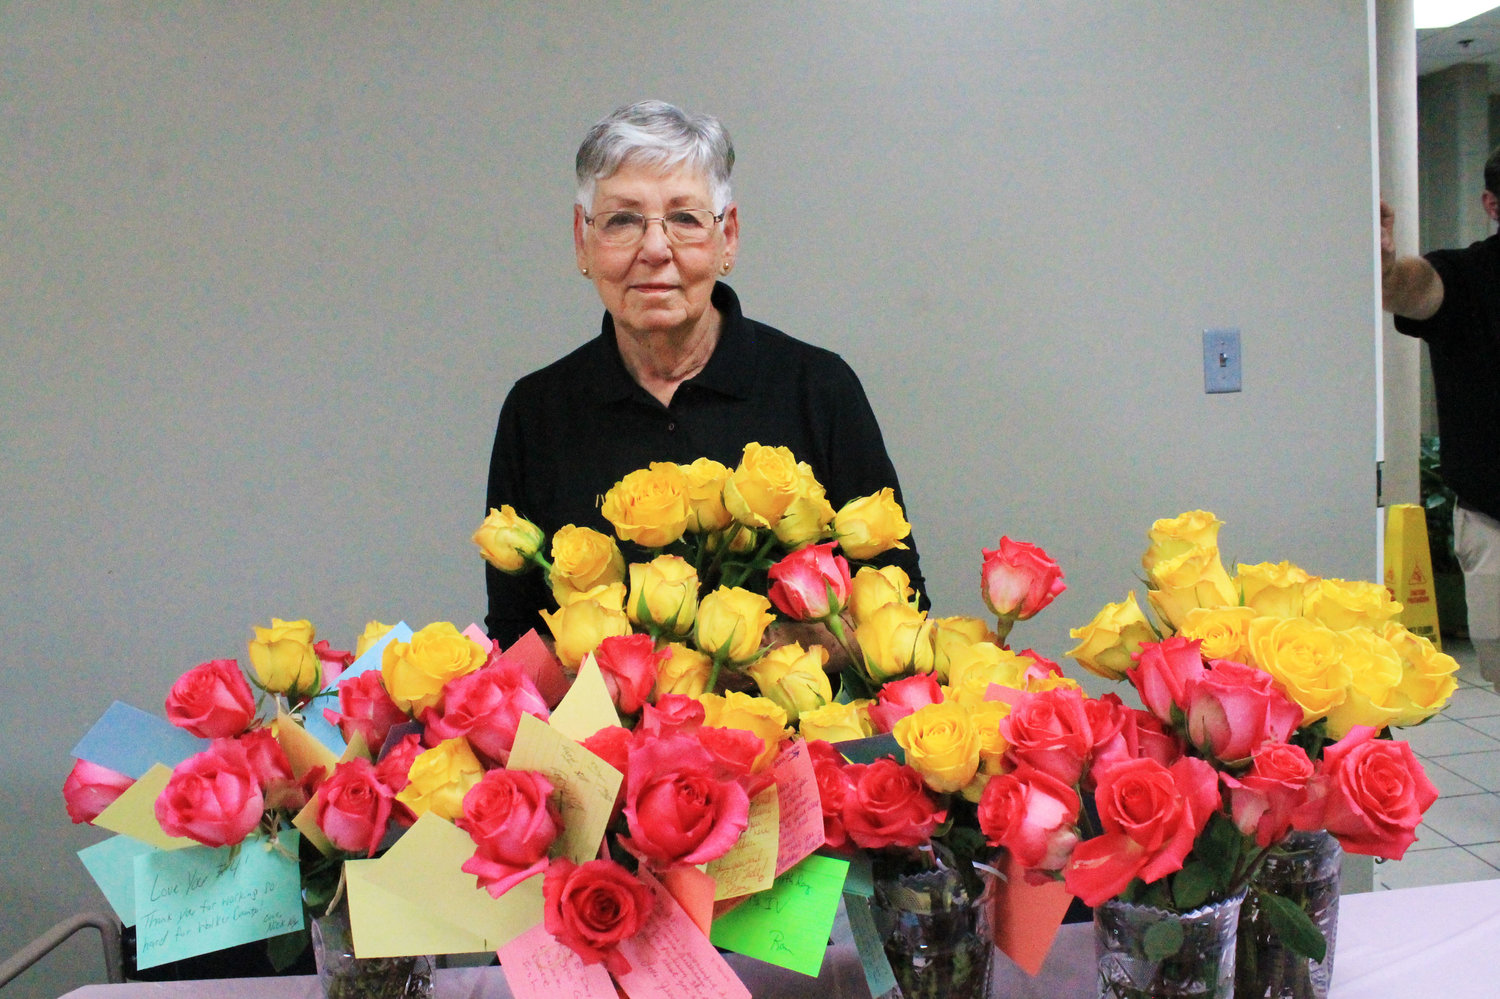 IV Rutledge, known to all as Miss IV, got 100 roses and kind notes from coworkers at the Walker County Sheriff's Office on Wednesday in celebration of her 82nd birthday.